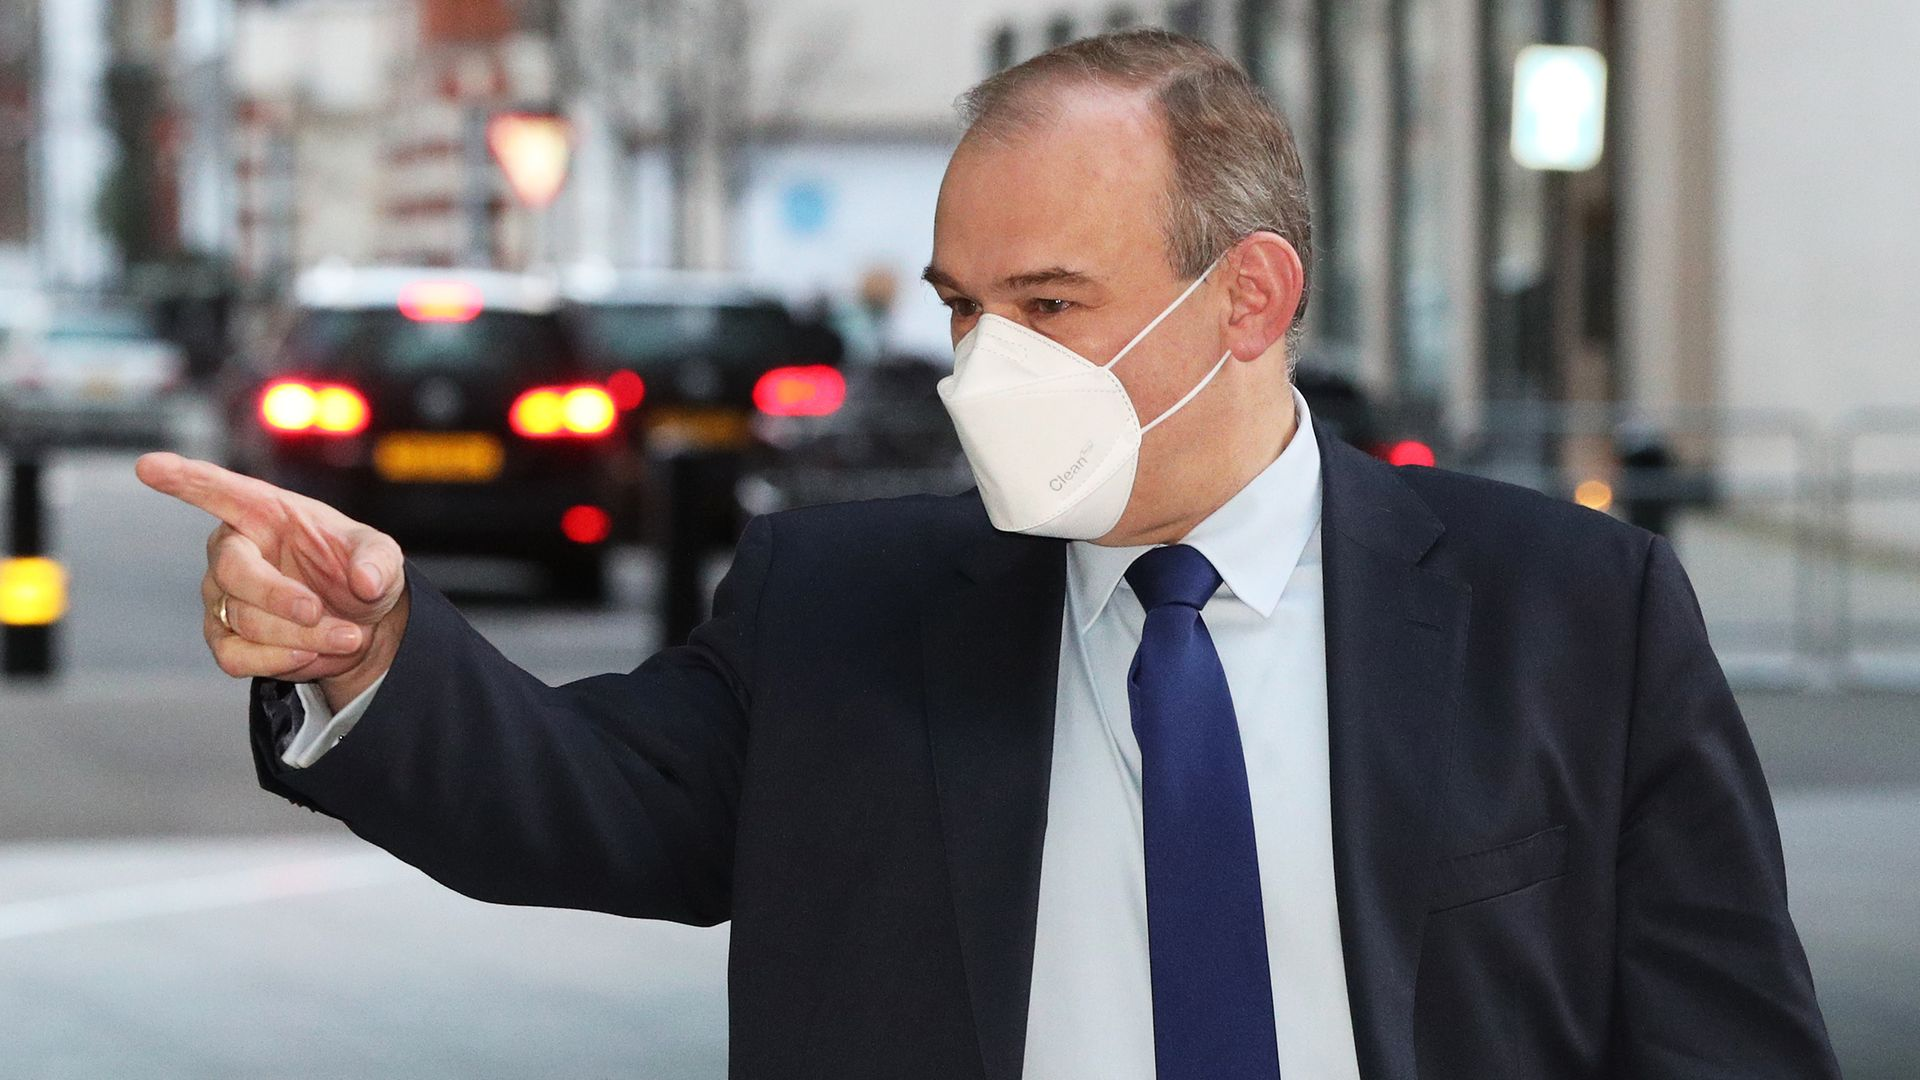 Liberal Democrats leader Ed Davey arriving at BBC Broadcasting House in central London - Credit: PA